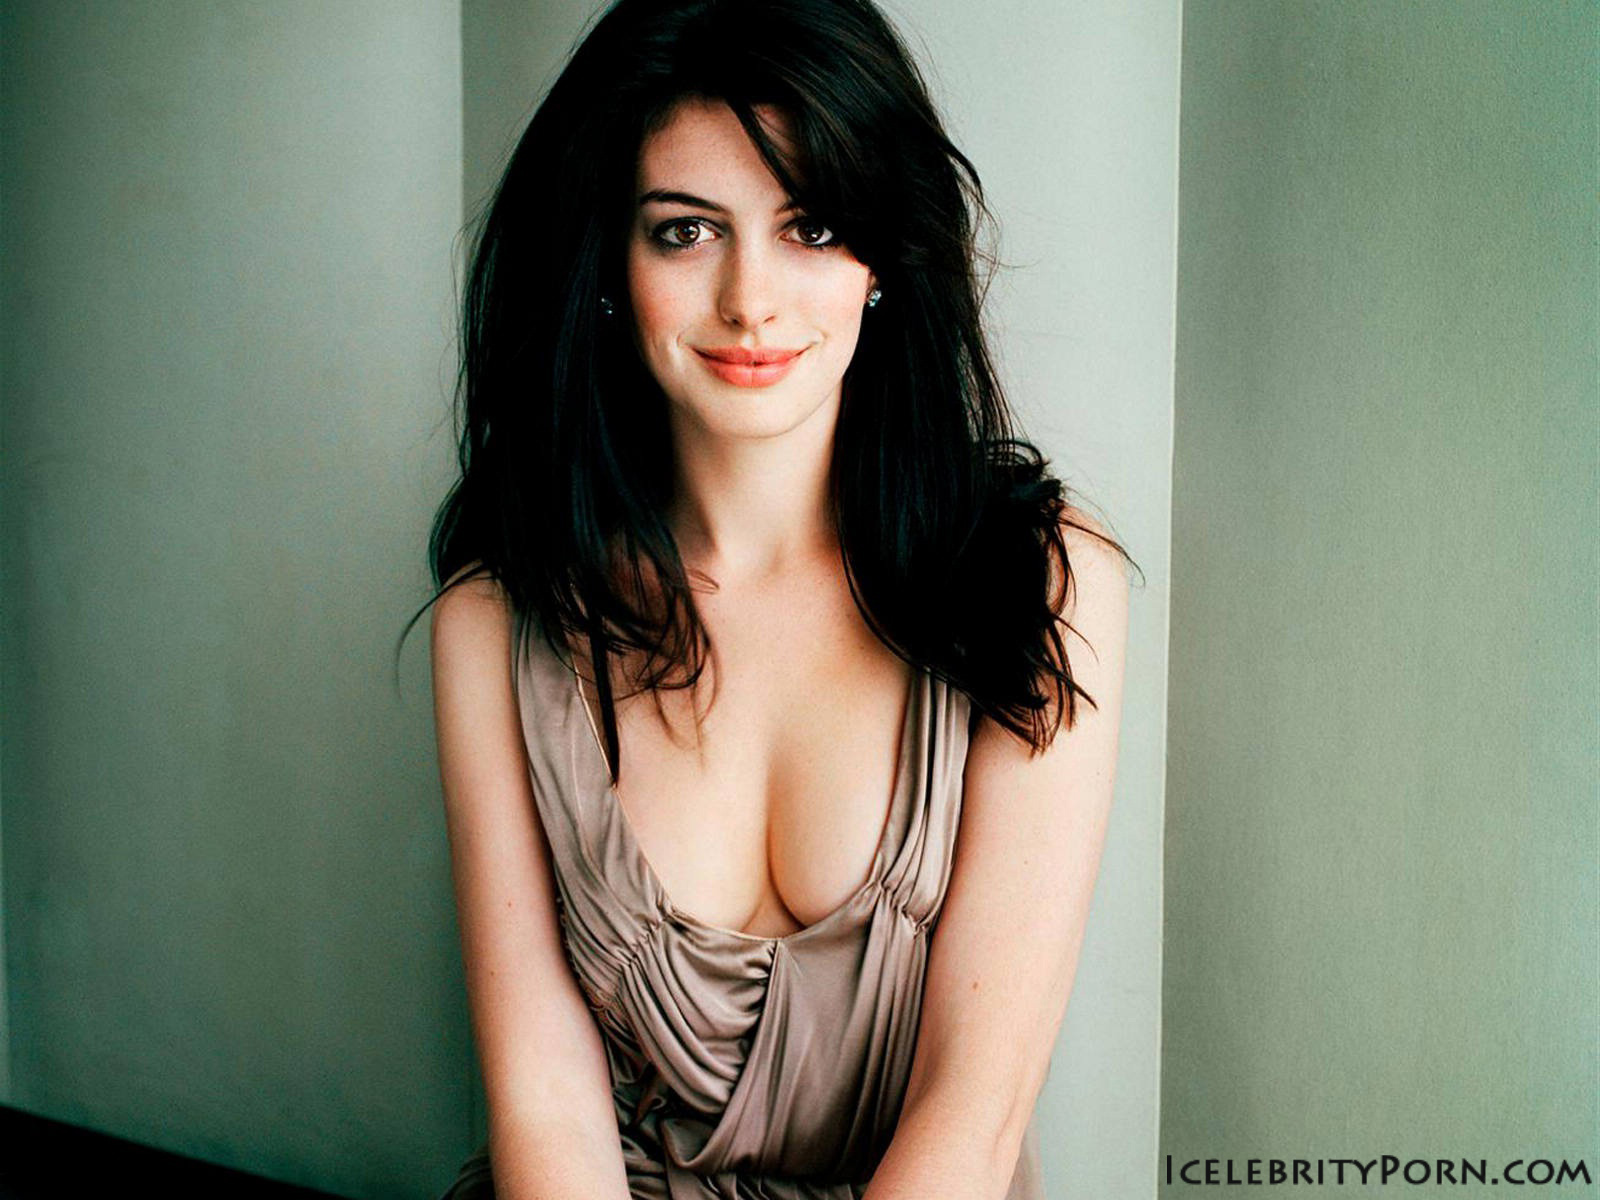 Anne Hathaway Nude Desnuda sex tape hot pics xxx porn video nudes celebrity hot caliente (12)